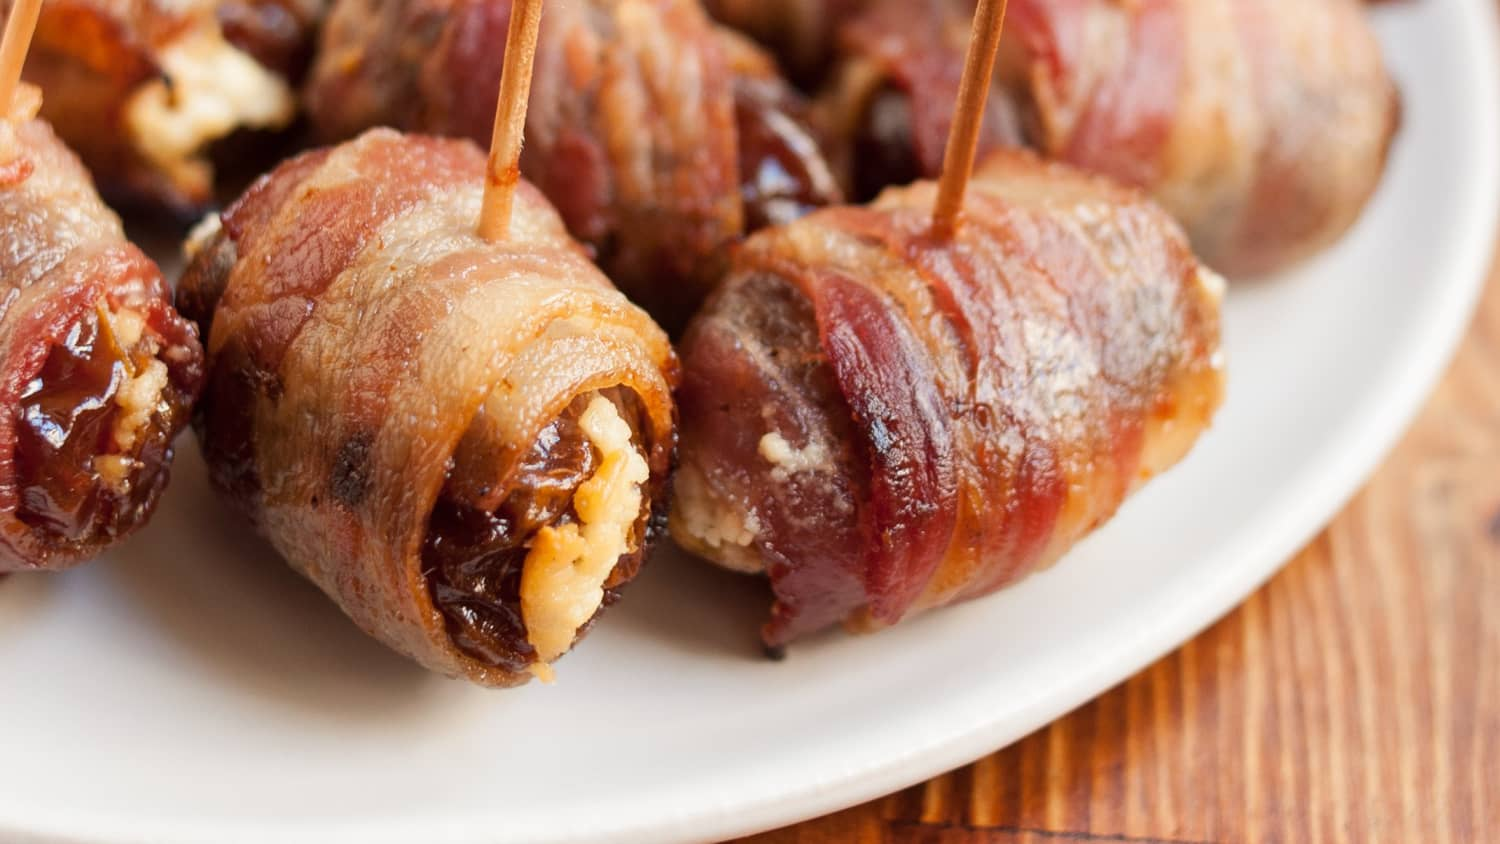 How To Make Bacon-Wrapped Dates